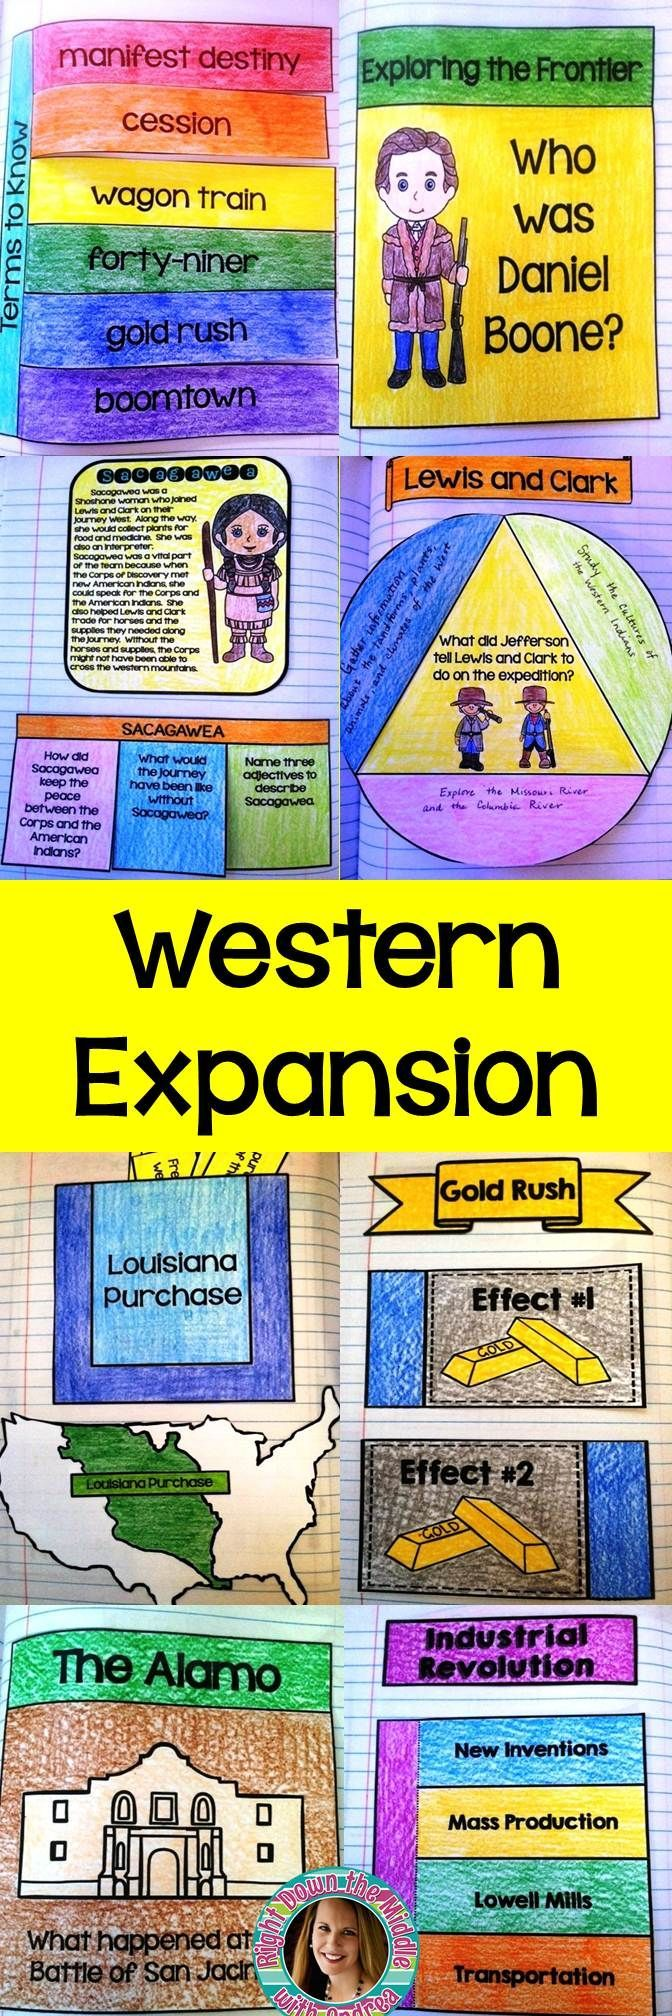 Westward Expansion Interactive Notebook...If you are teaching a unit on westward expansion in the United States, this is the perfect product for you! This resource comes with 12 templates, individual template directions, pictures of templates in an interactive notebook, a unit cover page, a table of contents page, and possible answers and information for each template. Students love using interactive notebooks! -Right Down the Middle with Andrea